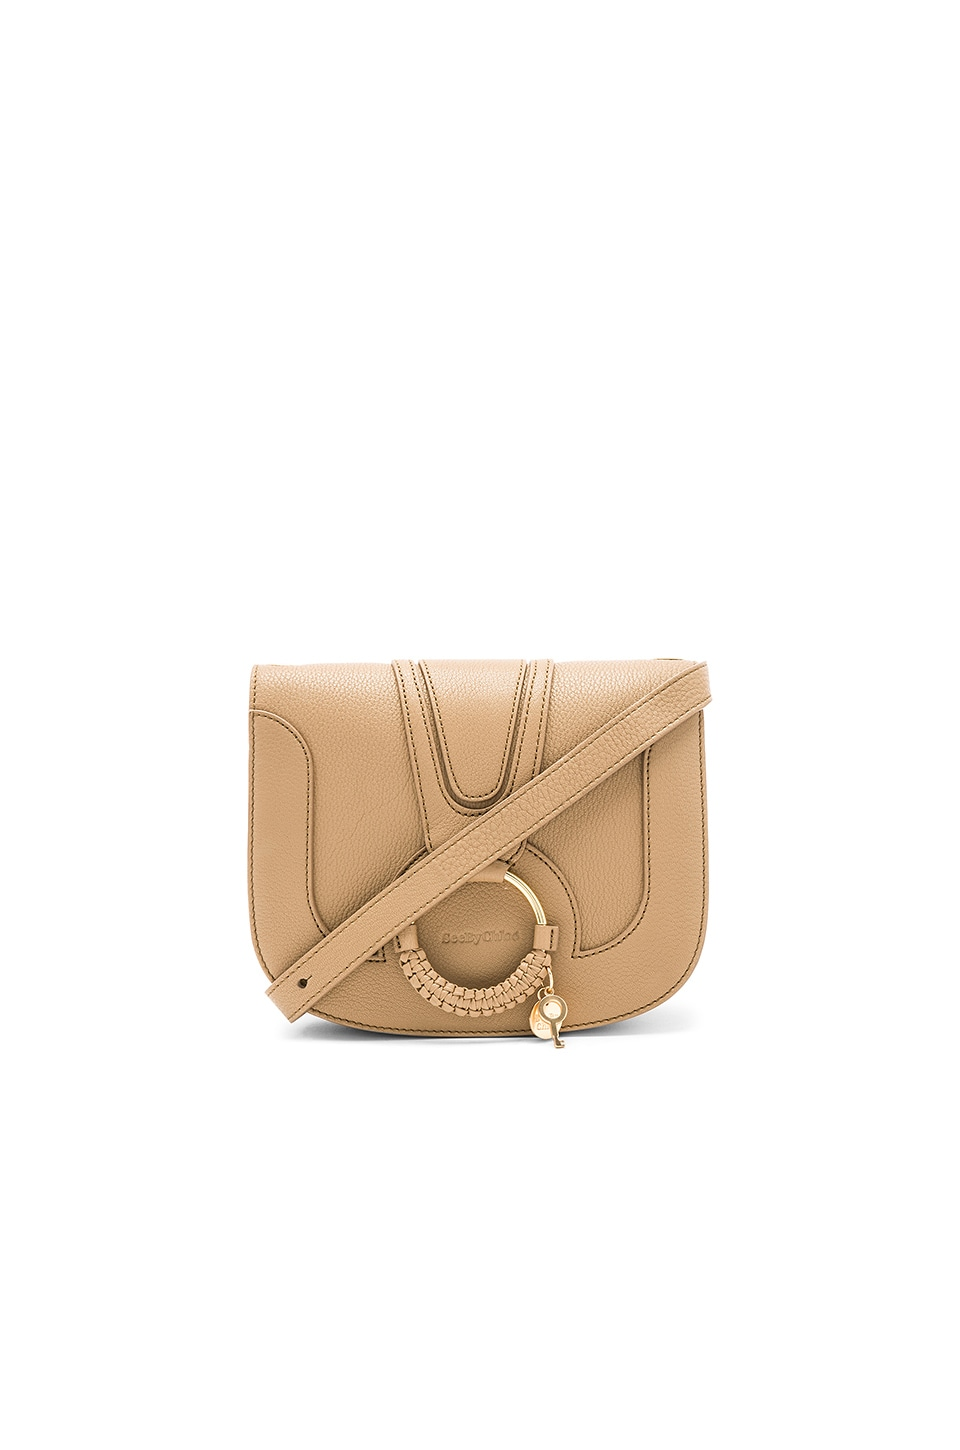 Hana Small Leather Crossbody